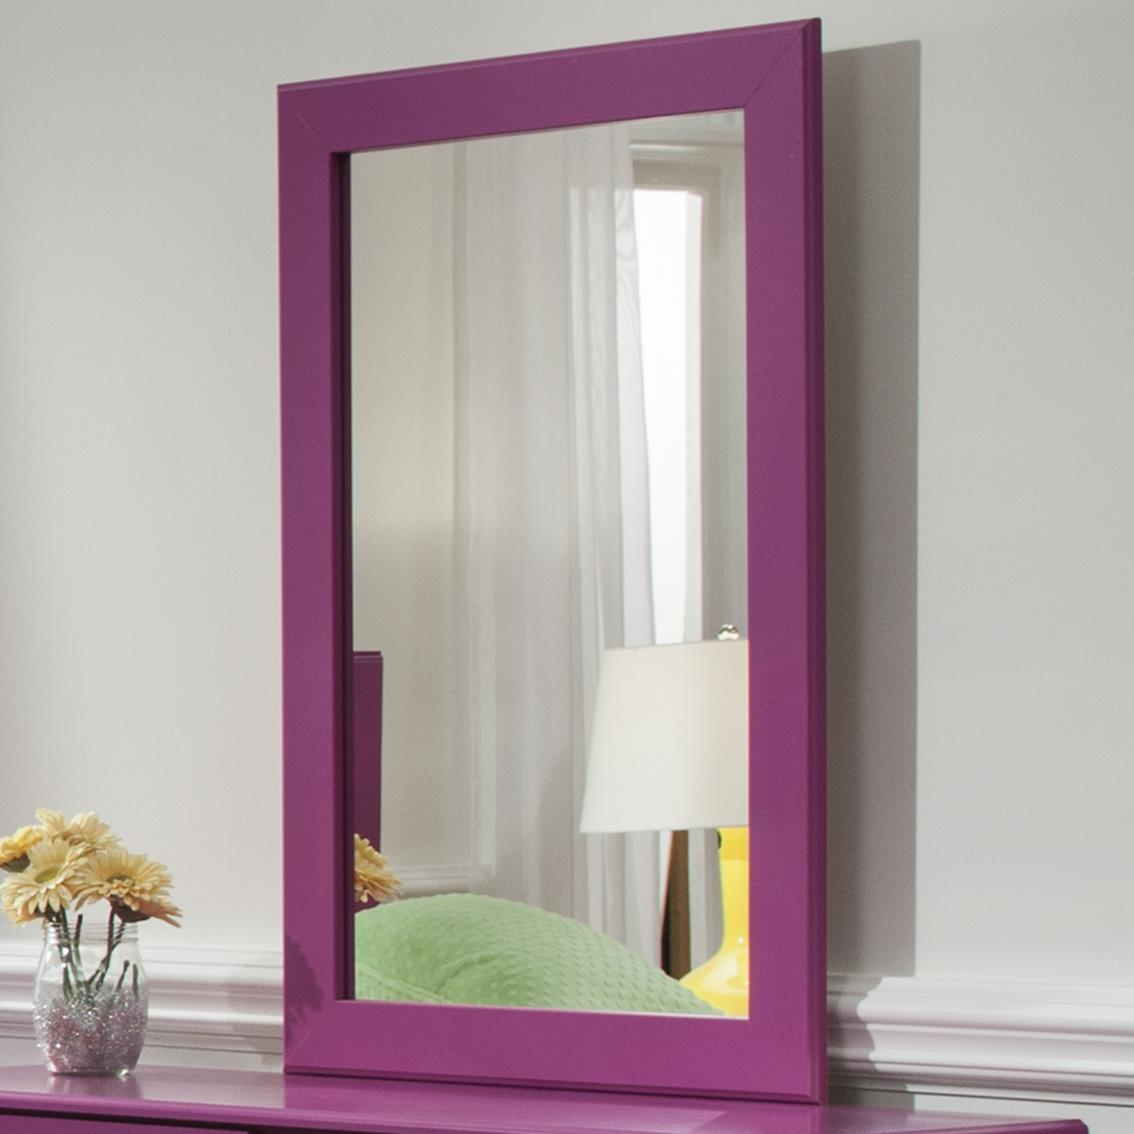 Kith Furniture 171 Raspberry Mirror - Item Number: 171-01